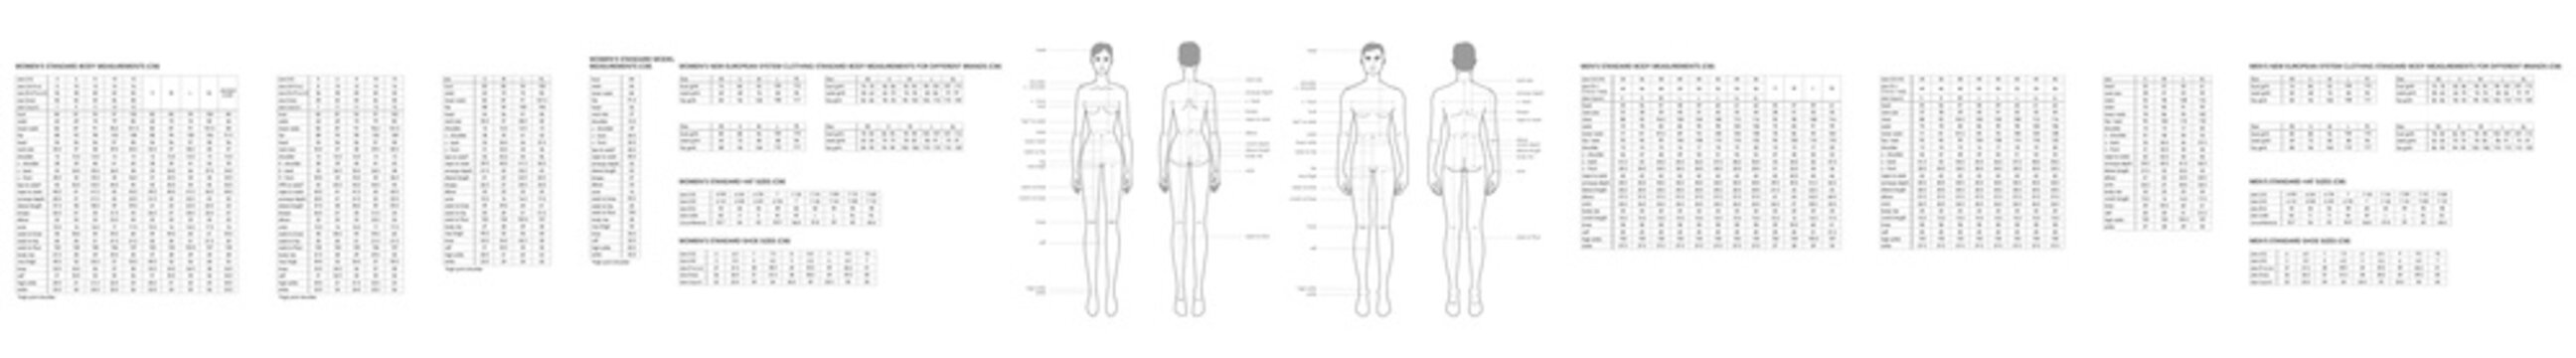 Set of men and women body parts terminology measurements and size charts Illustration for clothes and accessories production fashion 9 head male and female size chart. Human body infographic template